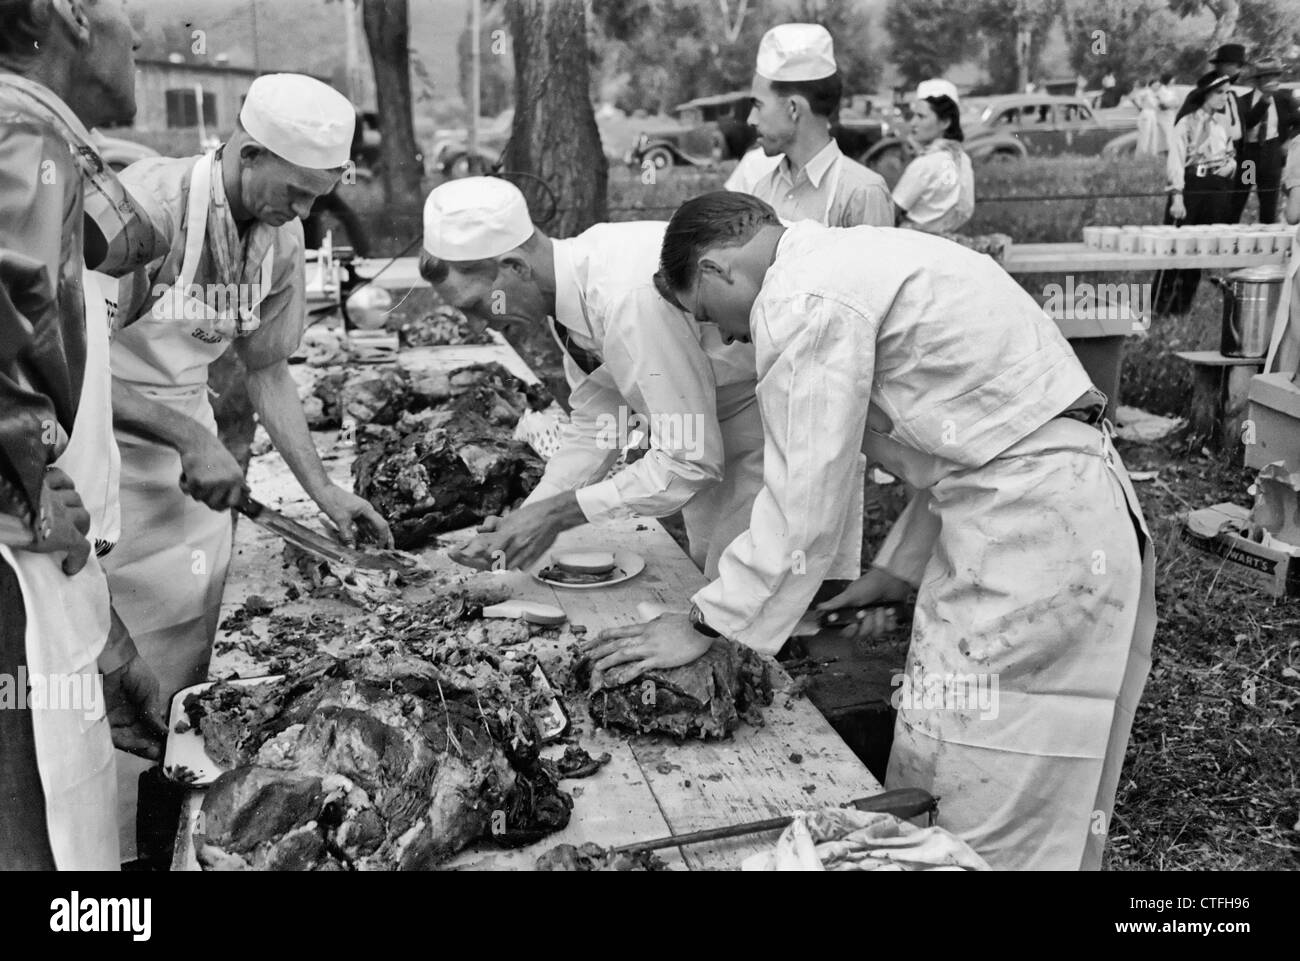 Making barbecue sandwiches at the free barbecue on Labor Day, Ridgway, Colorado, Circa 1940 - Stock Image